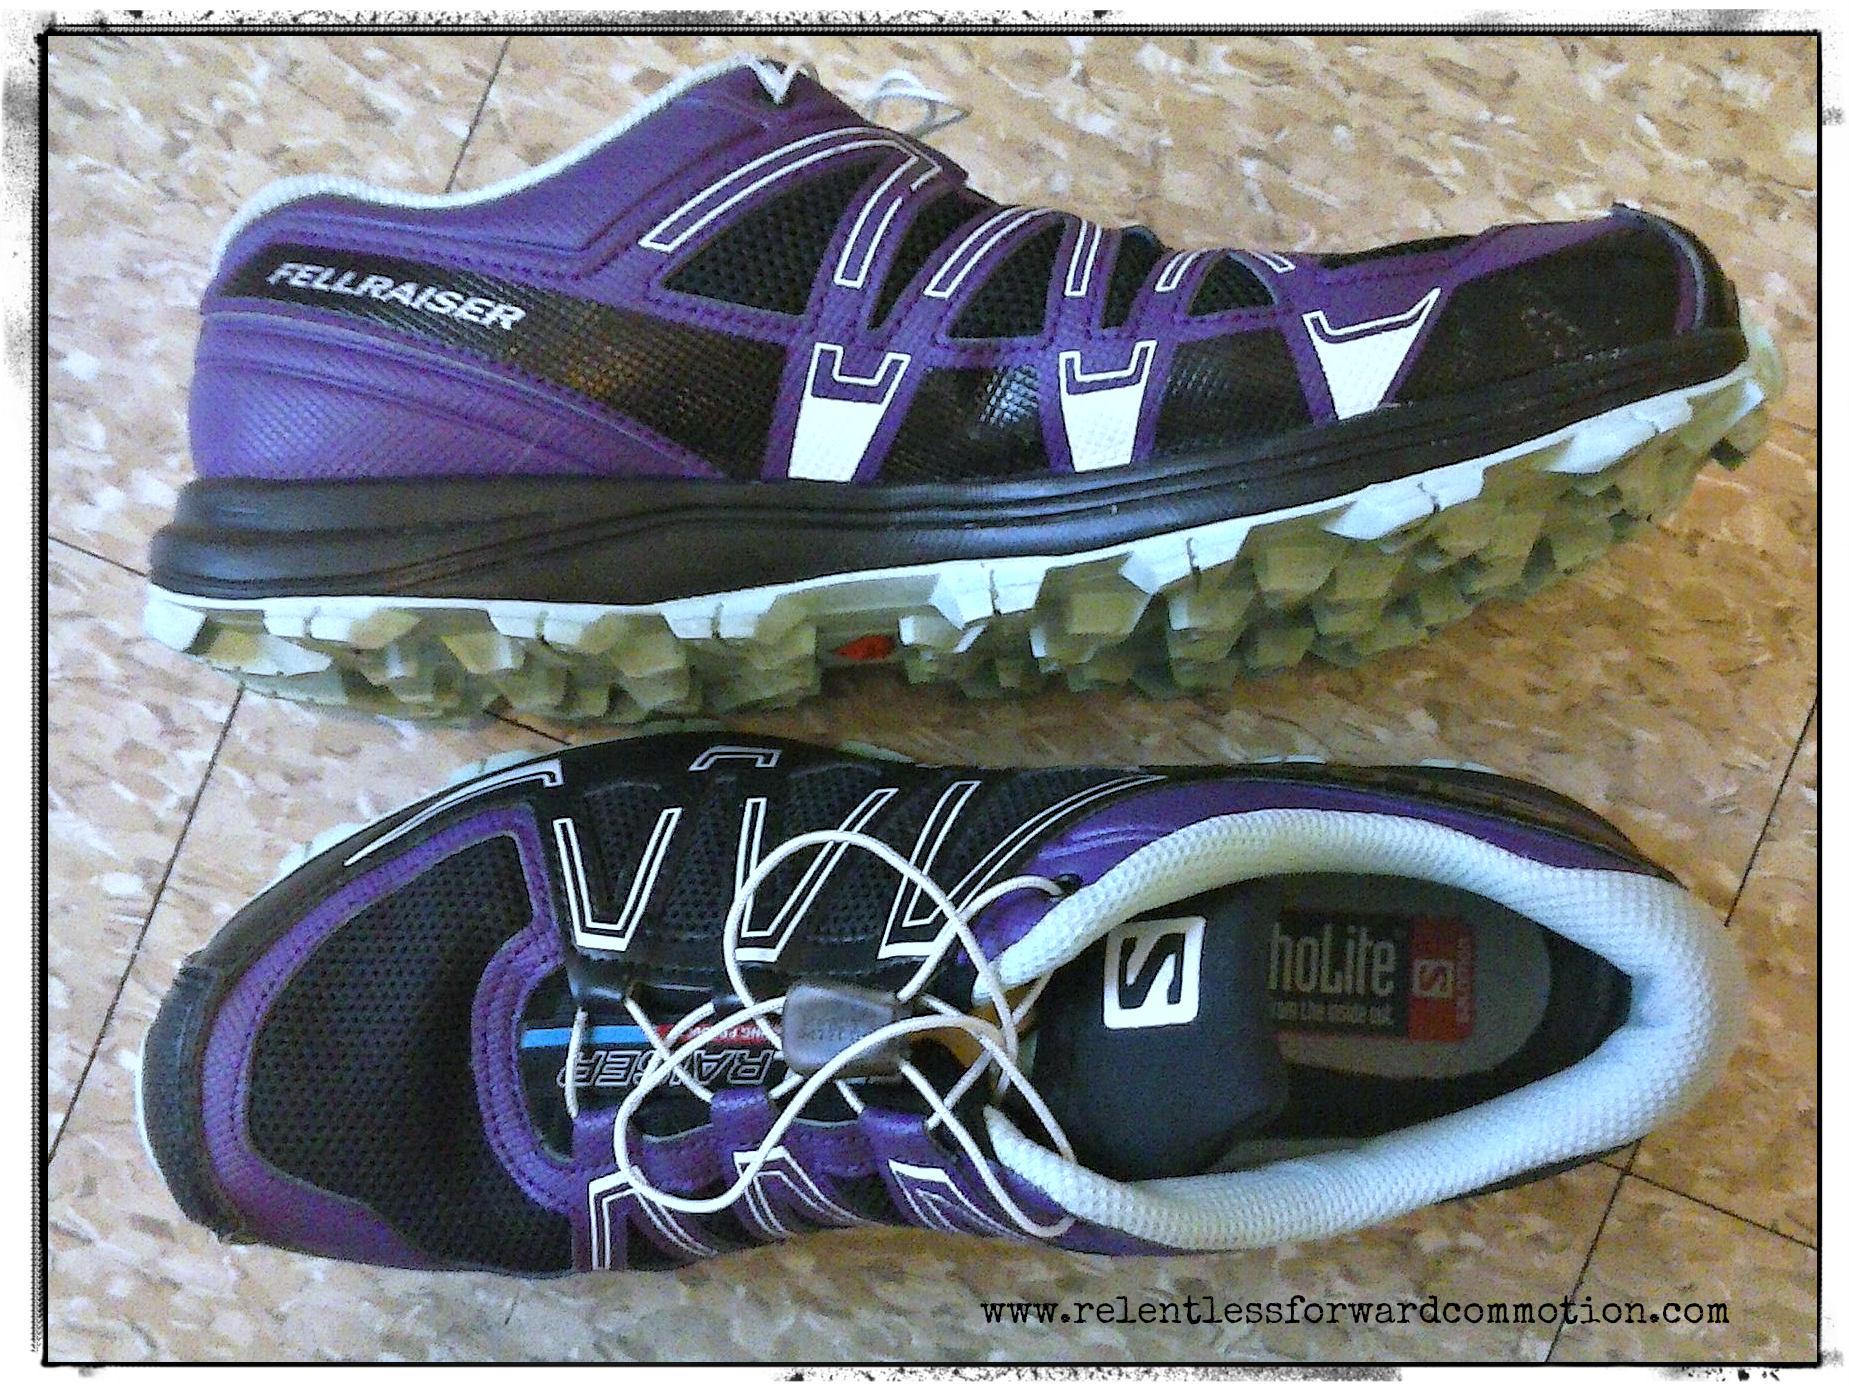 ... -Tongue cover: Tongue protection from mud and debris getting inside the  shoe. Fellraiser 2